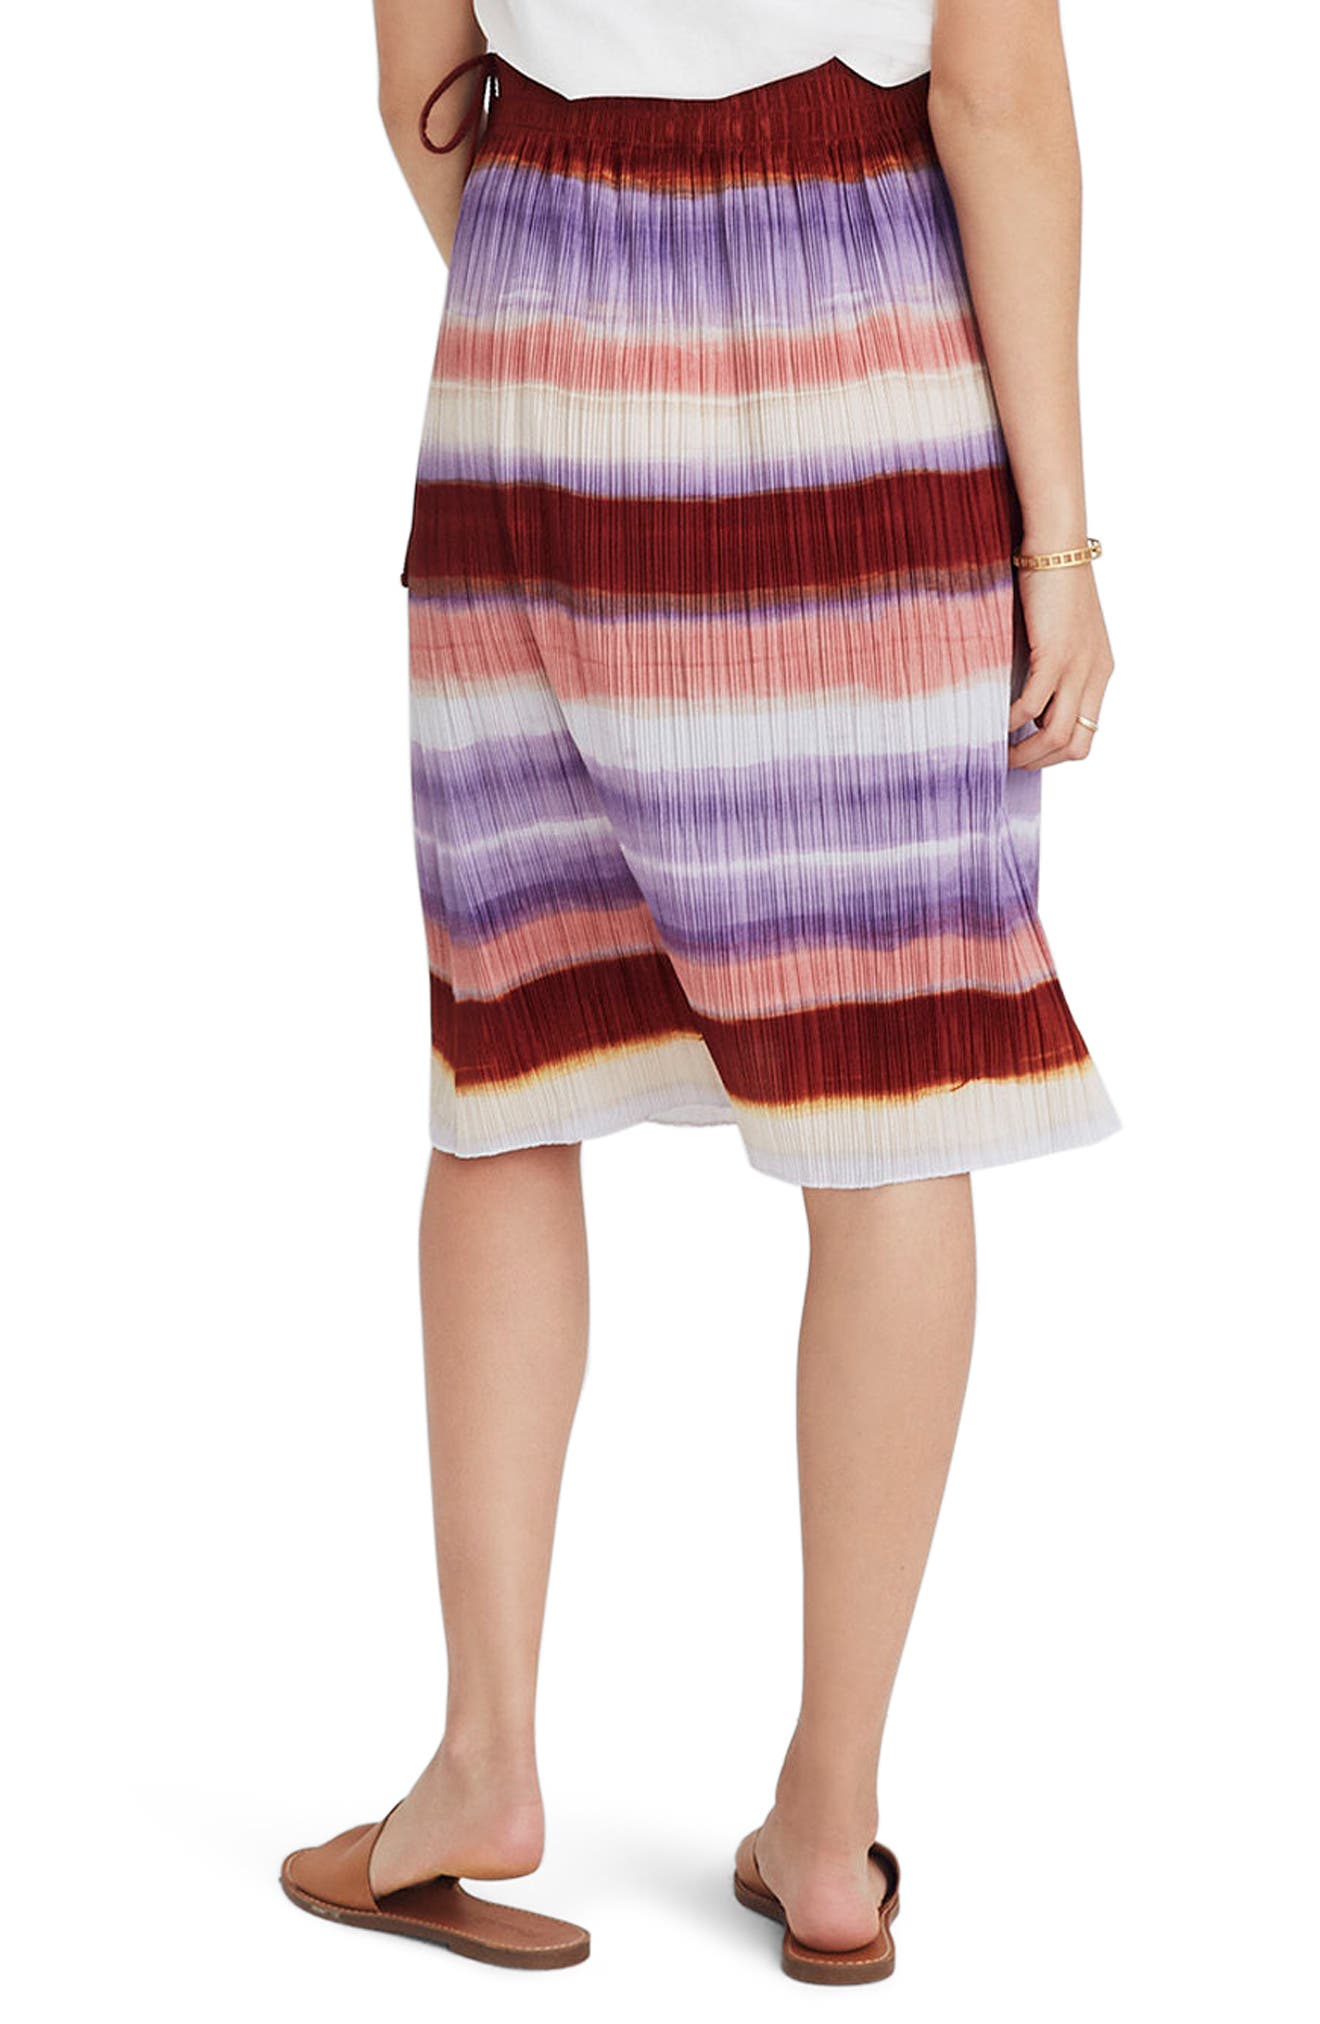 Texture & Thread Ombré Rainbow Micropleat Midi Skirt,                             Alternate thumbnail 2, color,                             CLEMENTINE CREAM